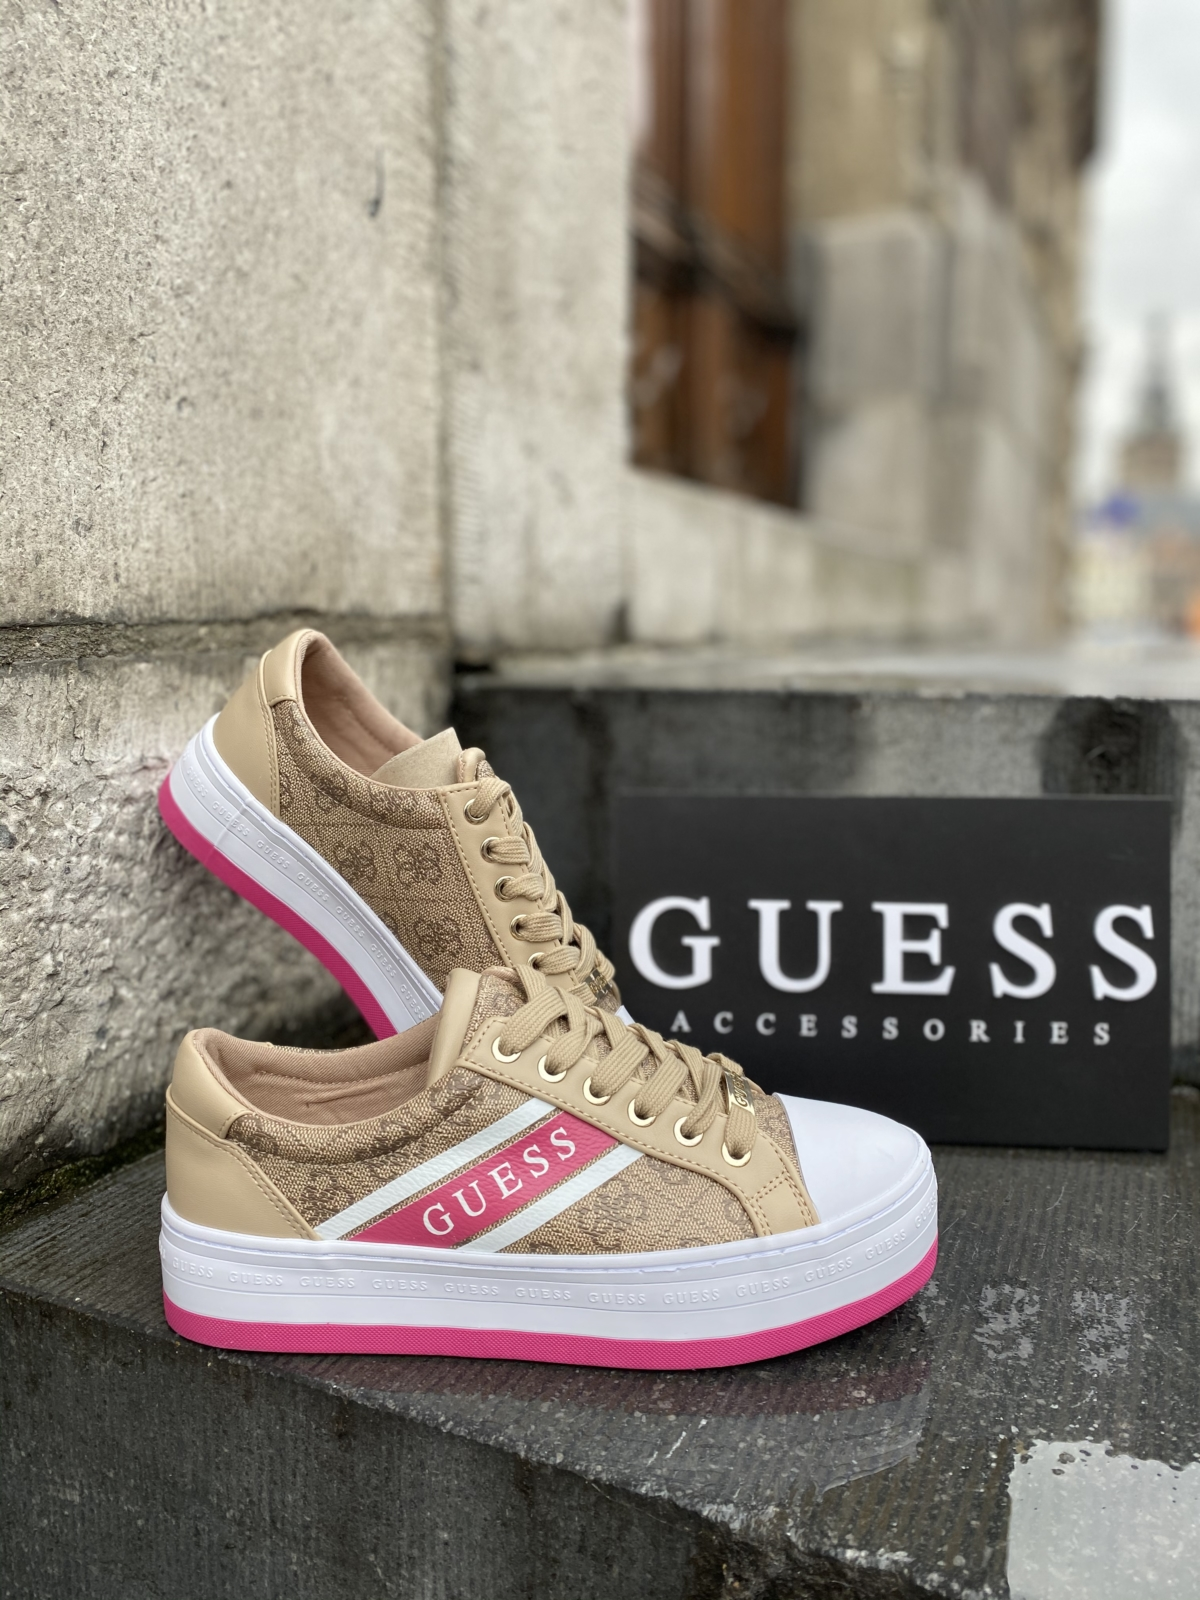 Guess sneakers 👟 New